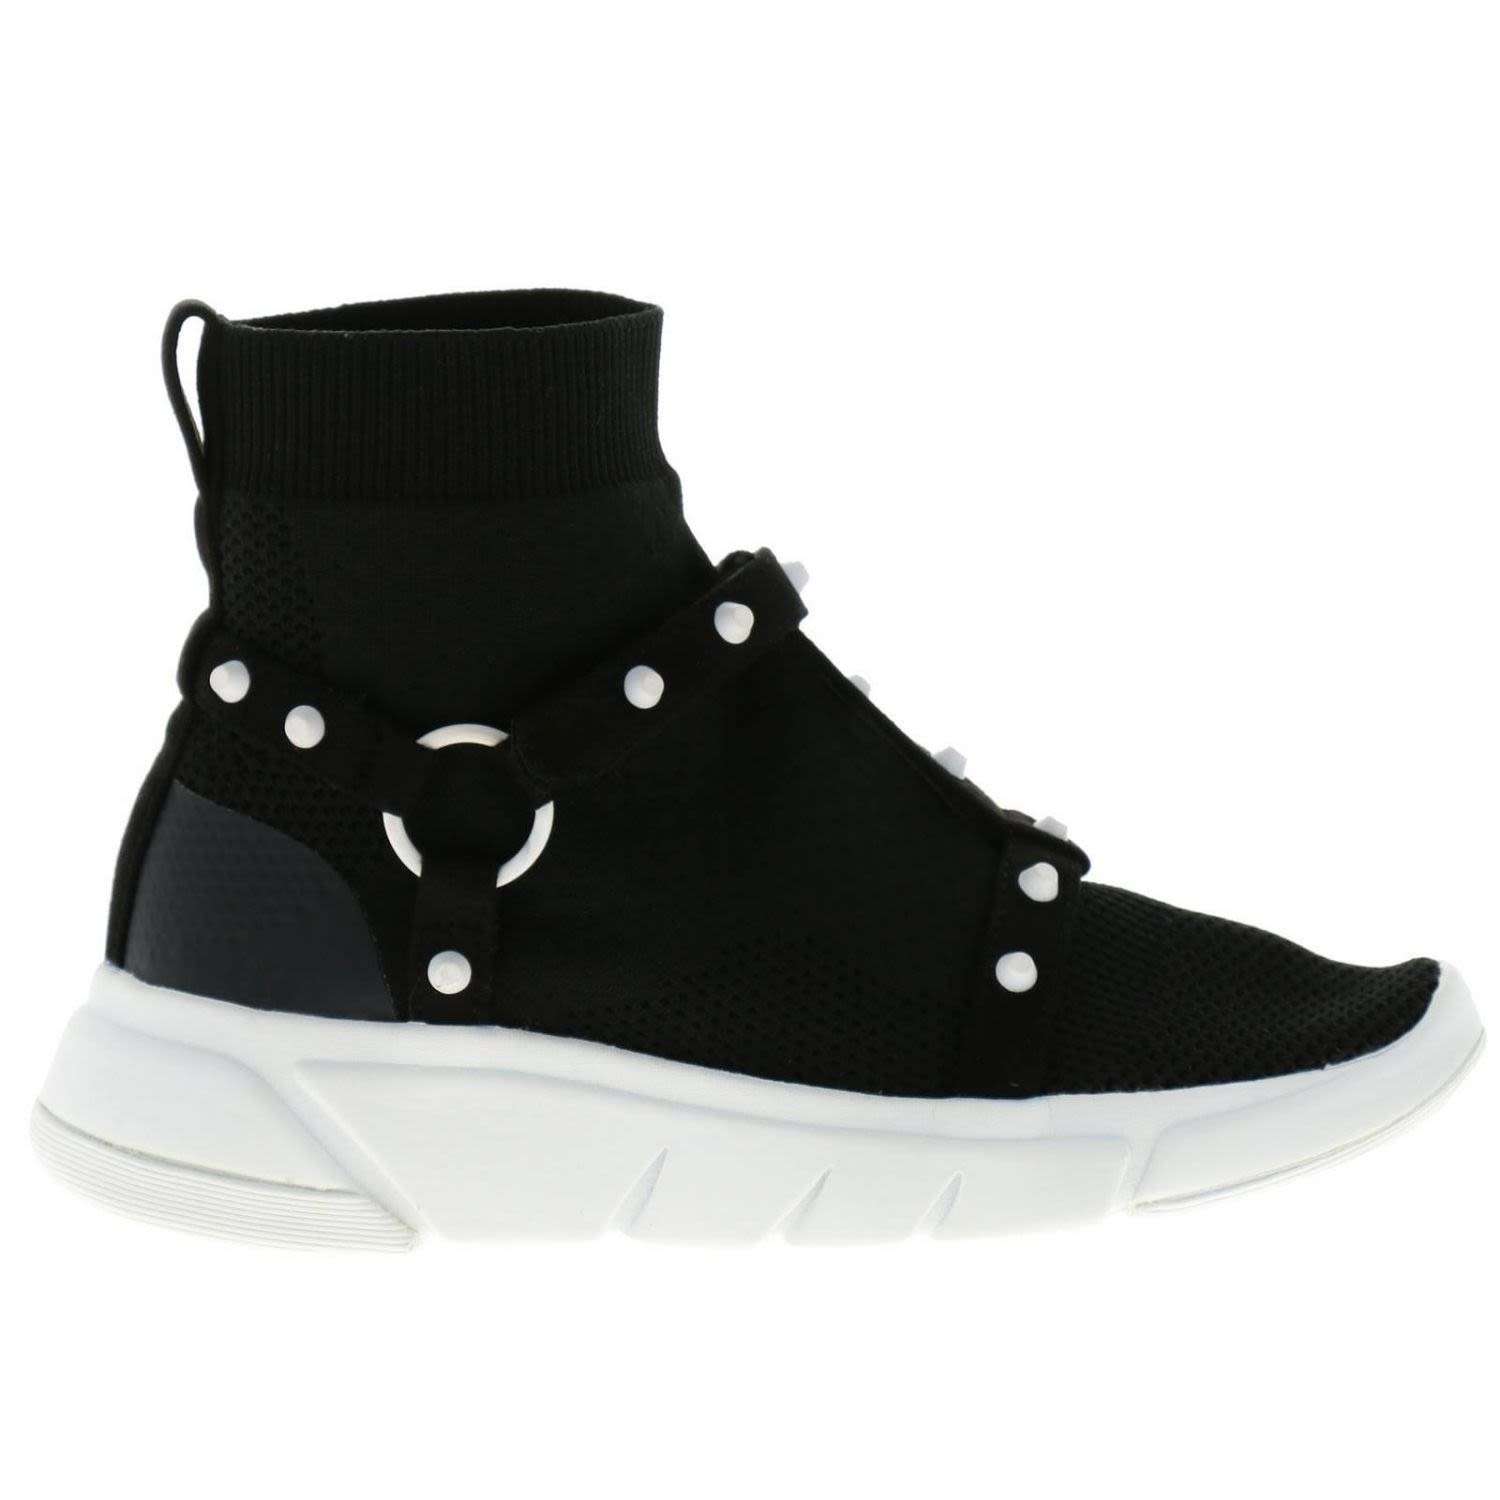 Kendall + Kylie Sneakers Shoes Women Kendall + Kylie